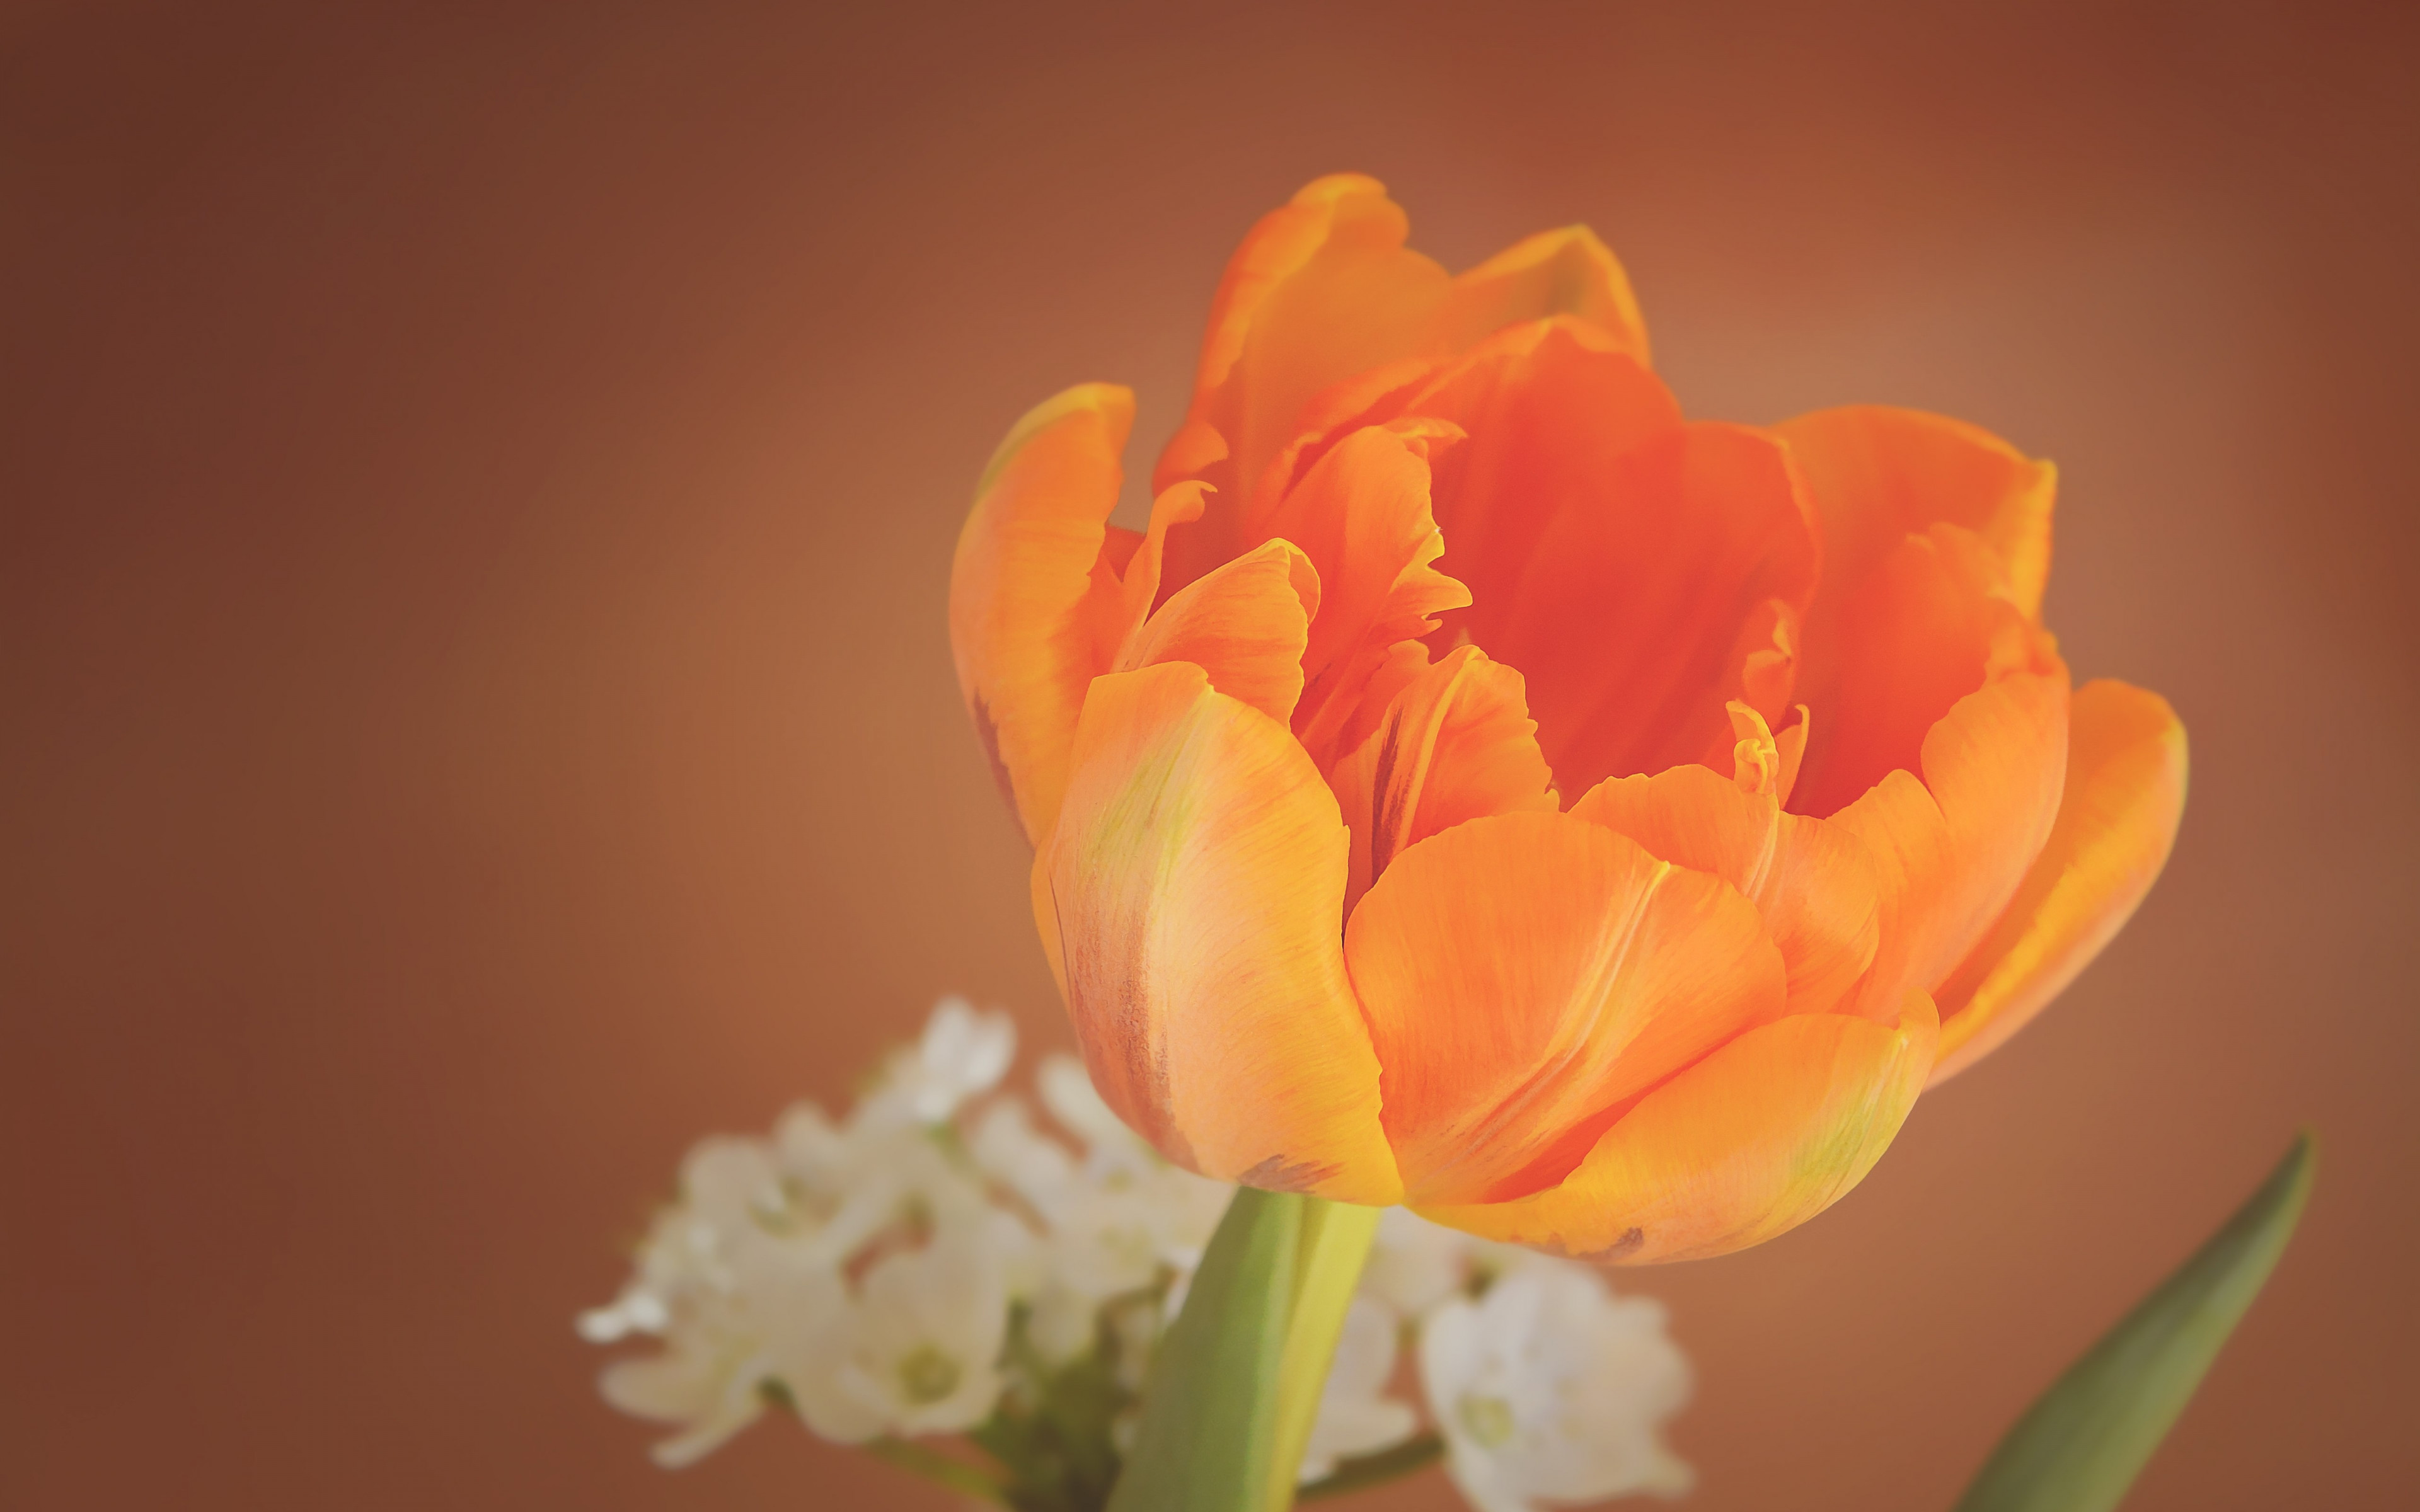 Orange tulip wallpaper 3840x2400